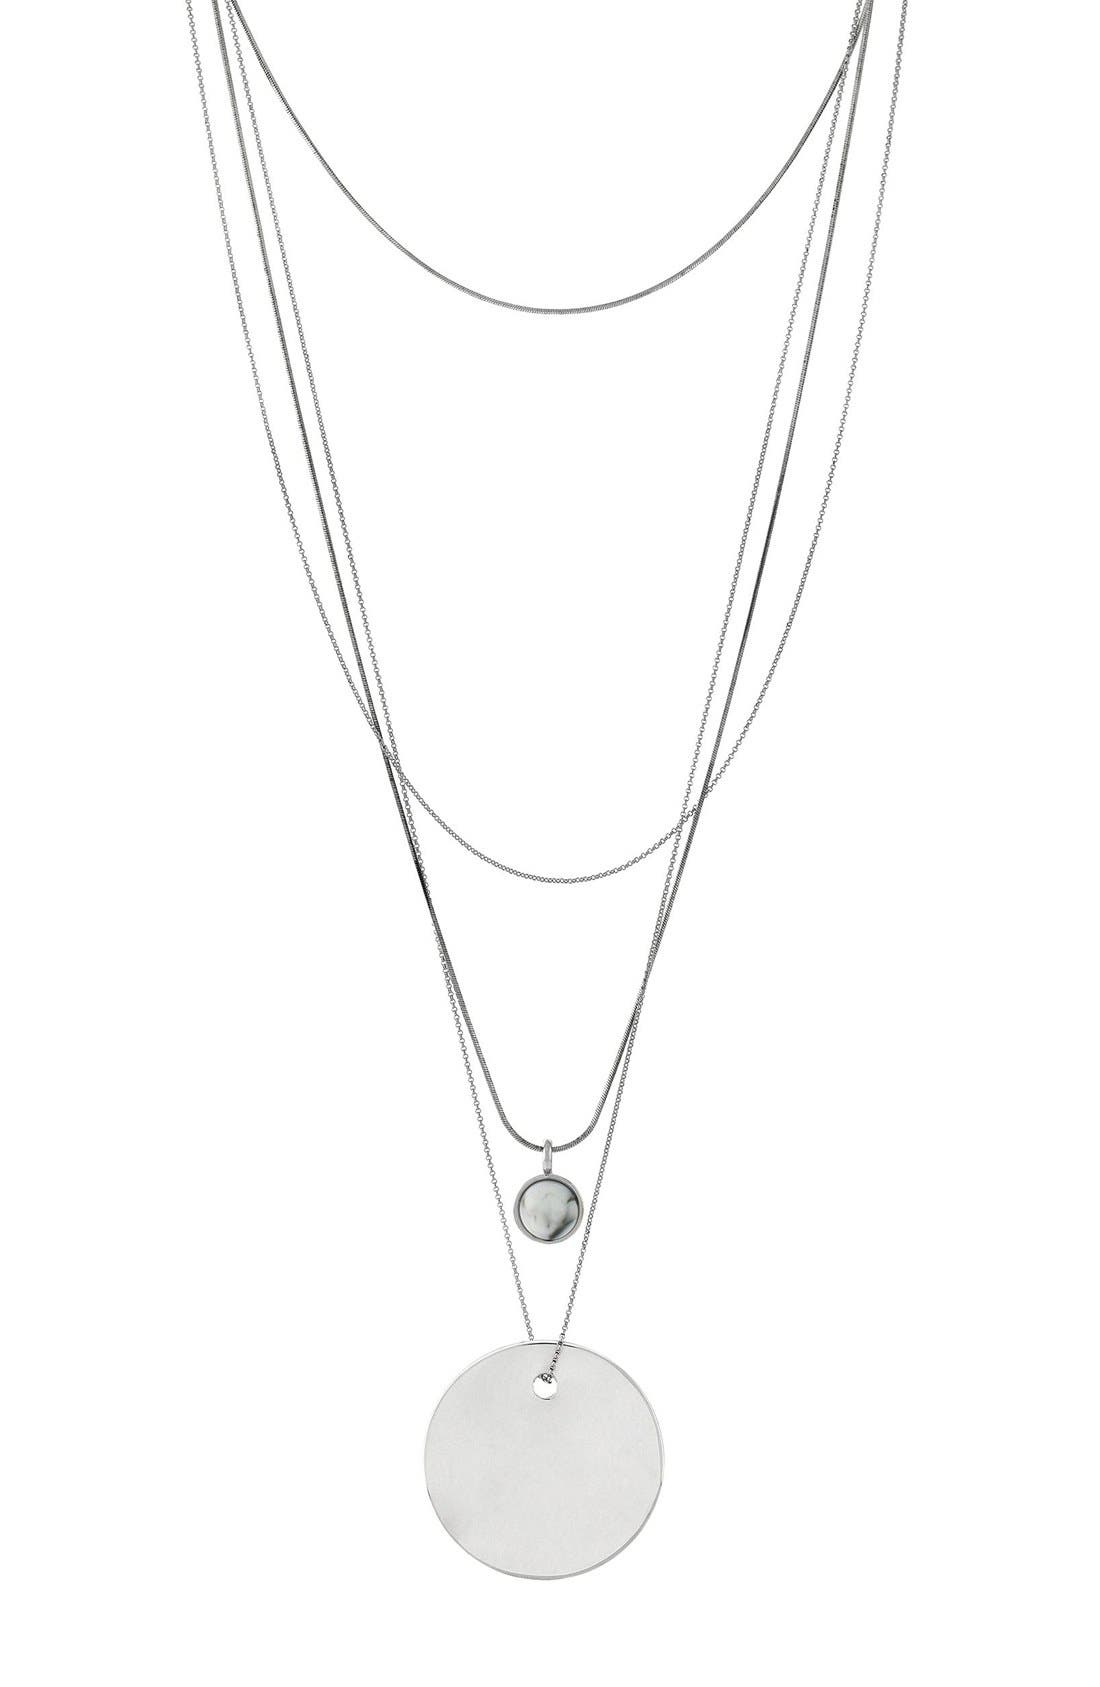 Alternate Image 1 Selected - Vince Camuto Multistrand Pendant Necklace